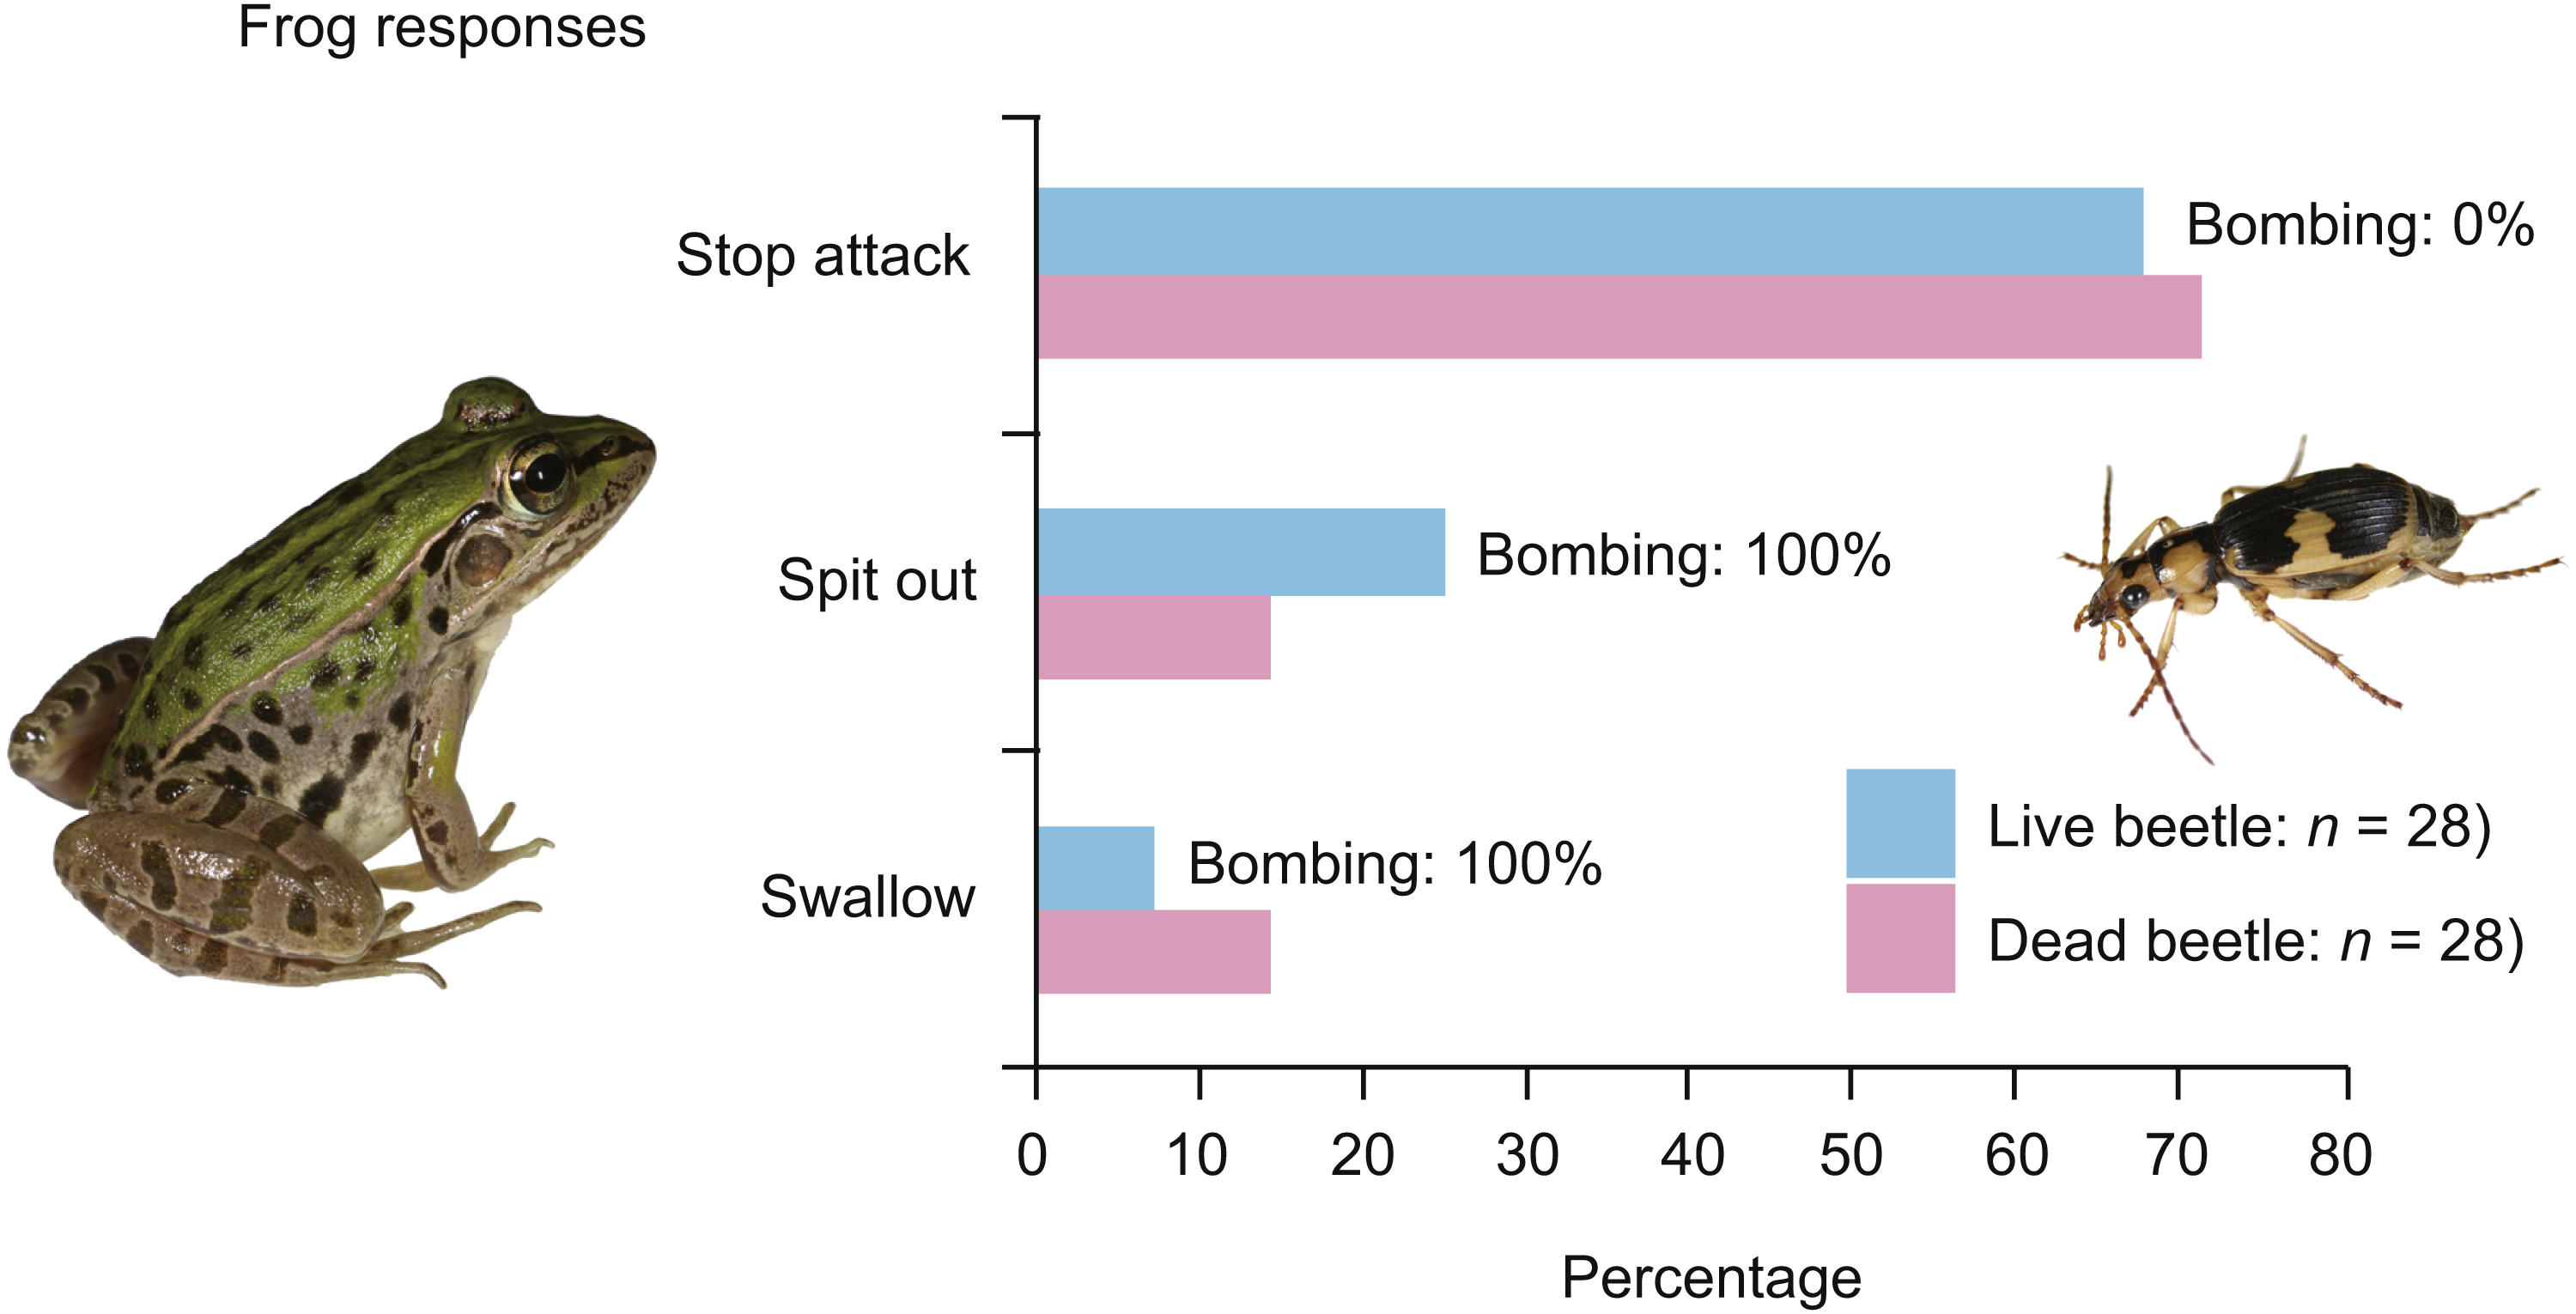 Anti-predator defences of a bombardier beetle: is bombing essential for  successful escape from frogs? [PeerJ]